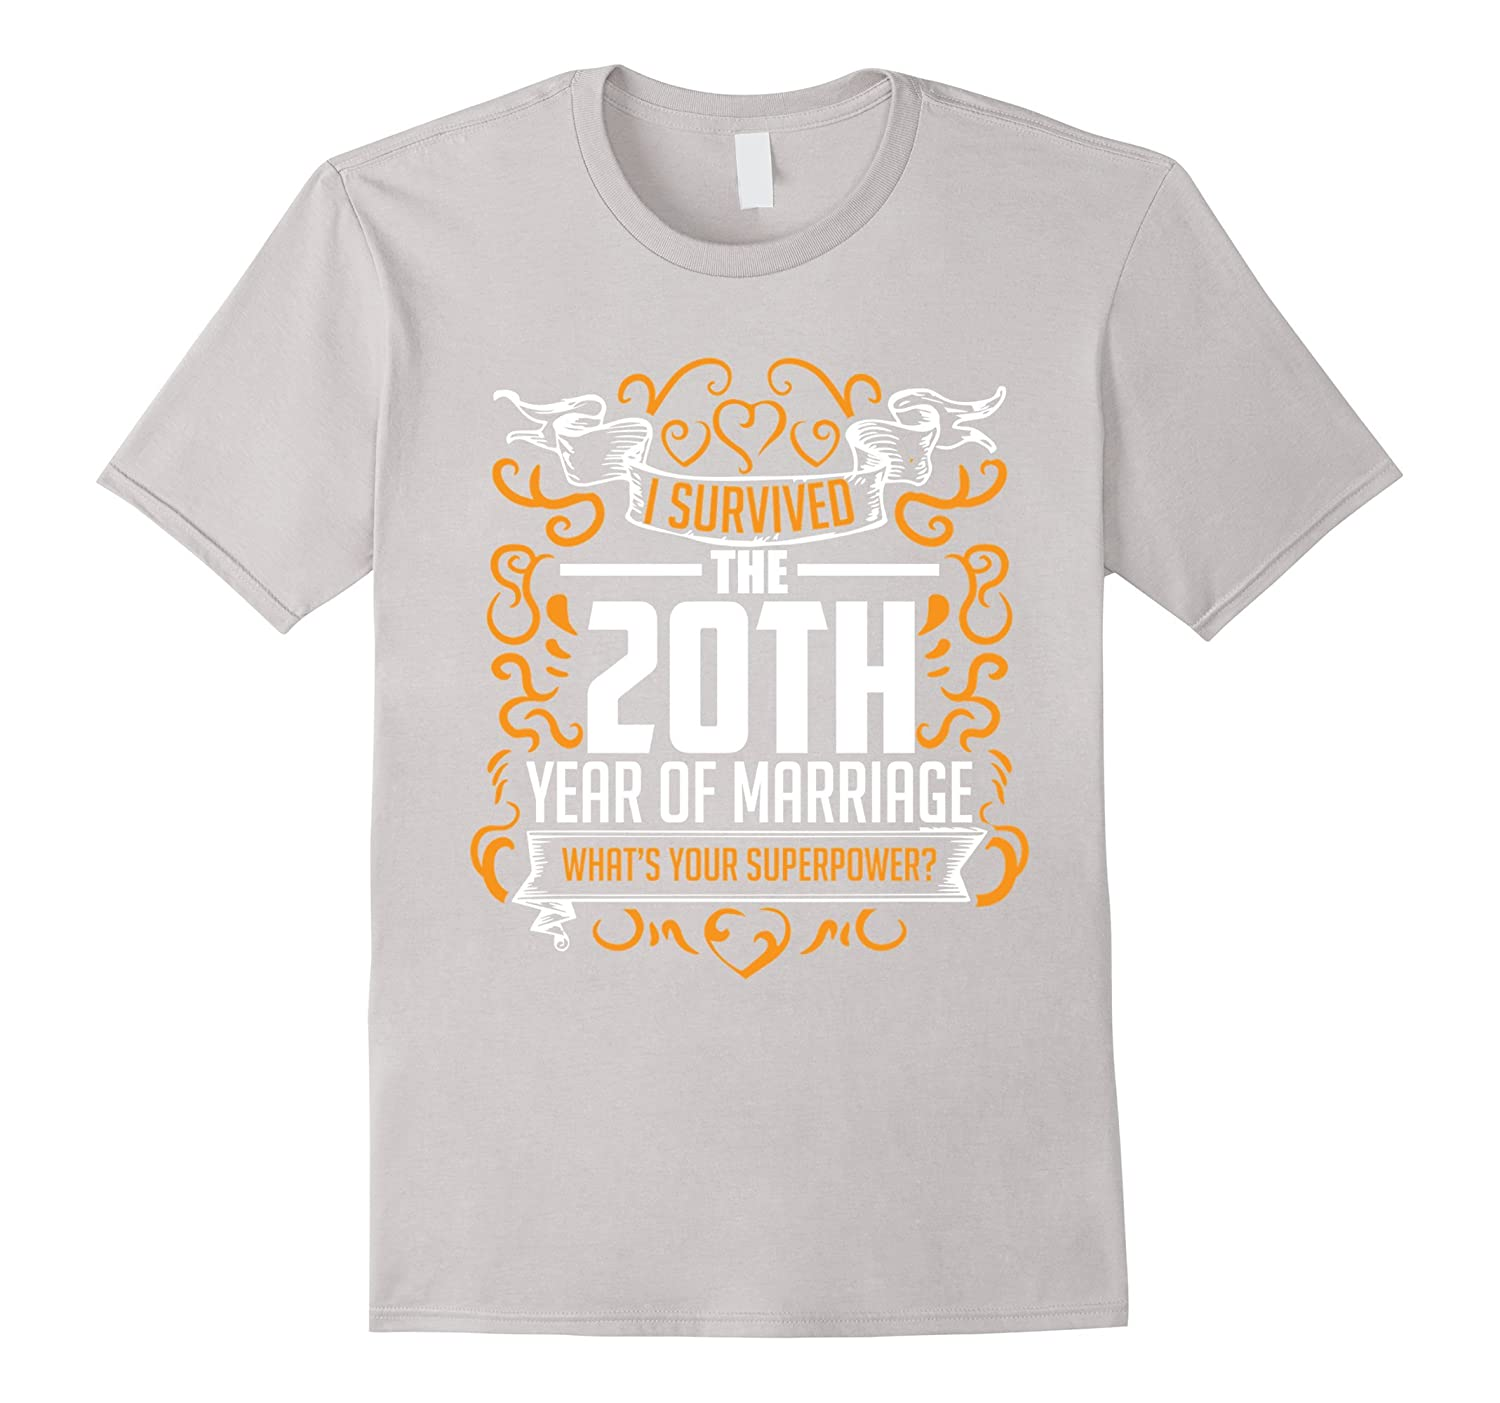 20th Wedding Anniversary Gifts 20 Year T Shirt For Her Him – Beckkam